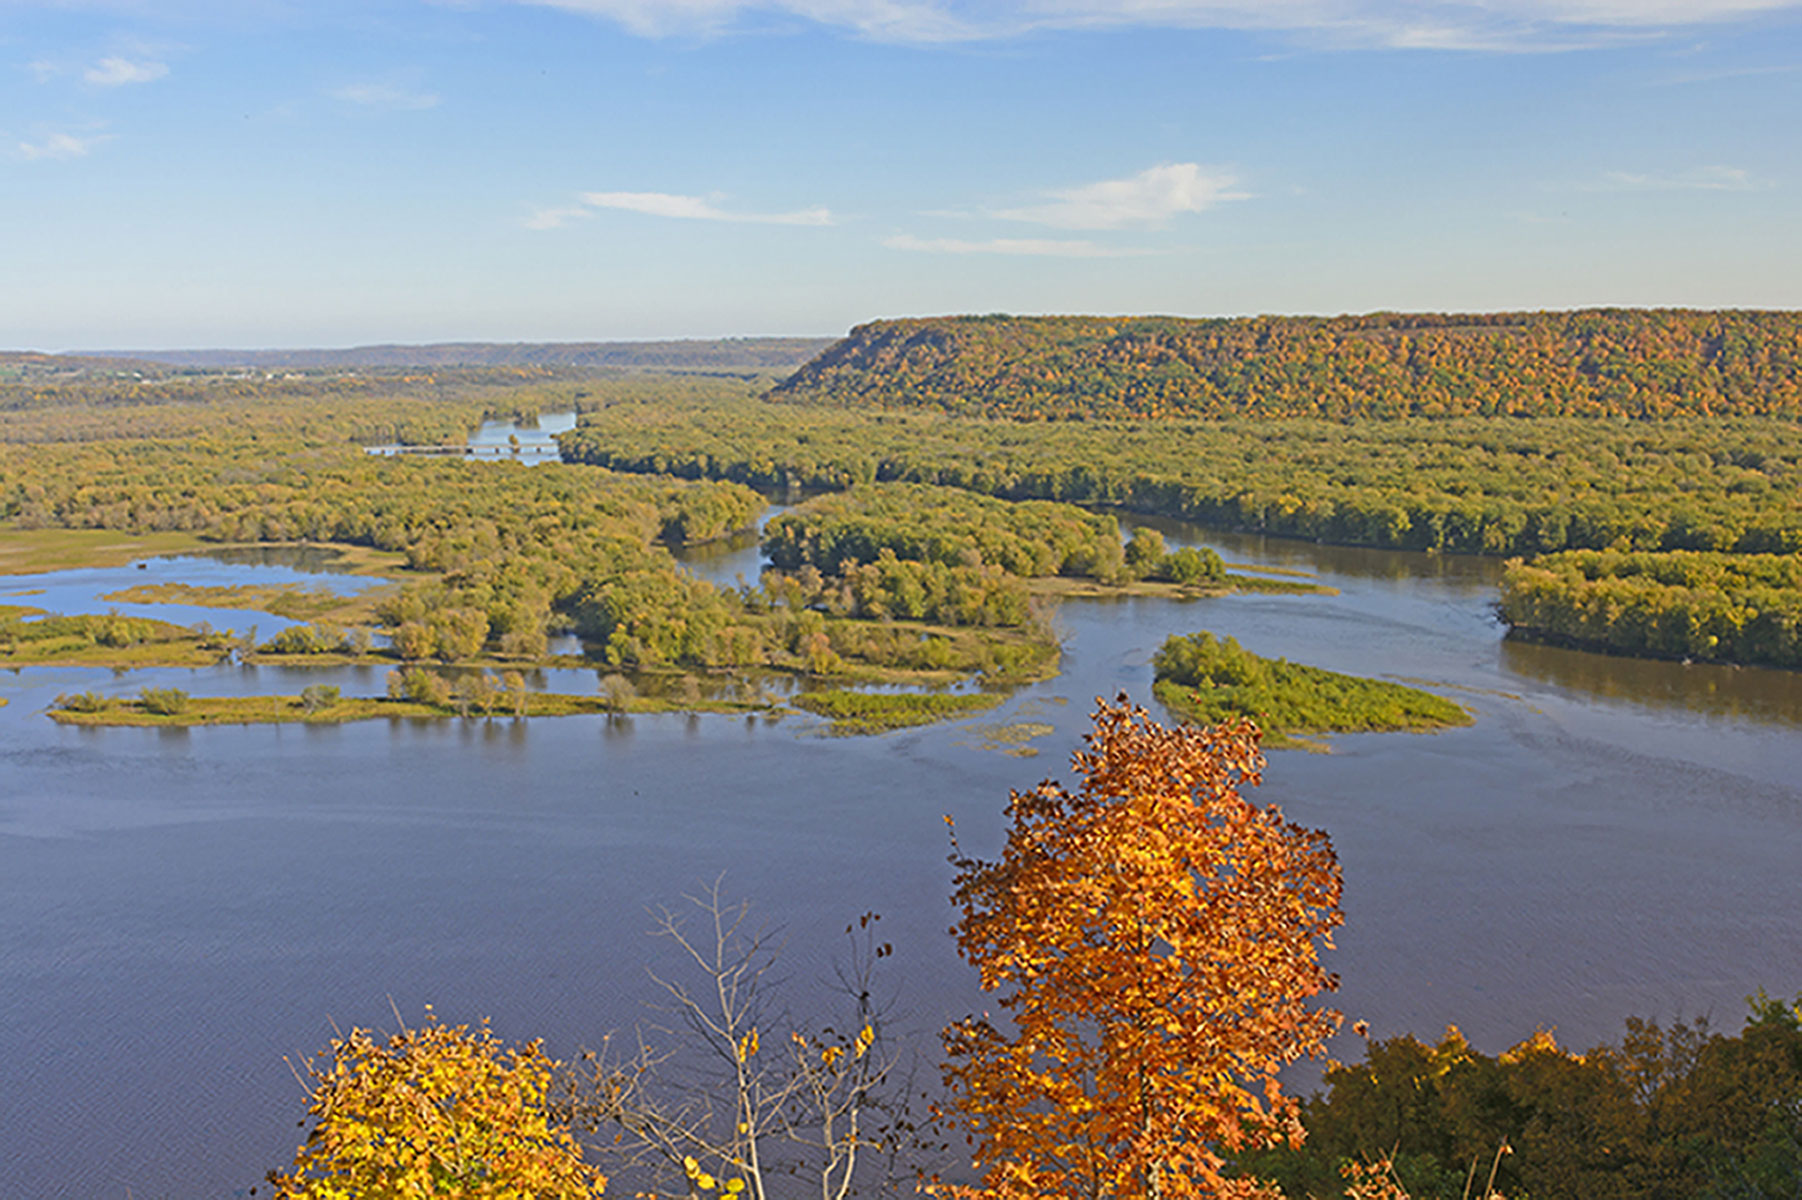 Breath-taking view of the surrounding bluffs and river